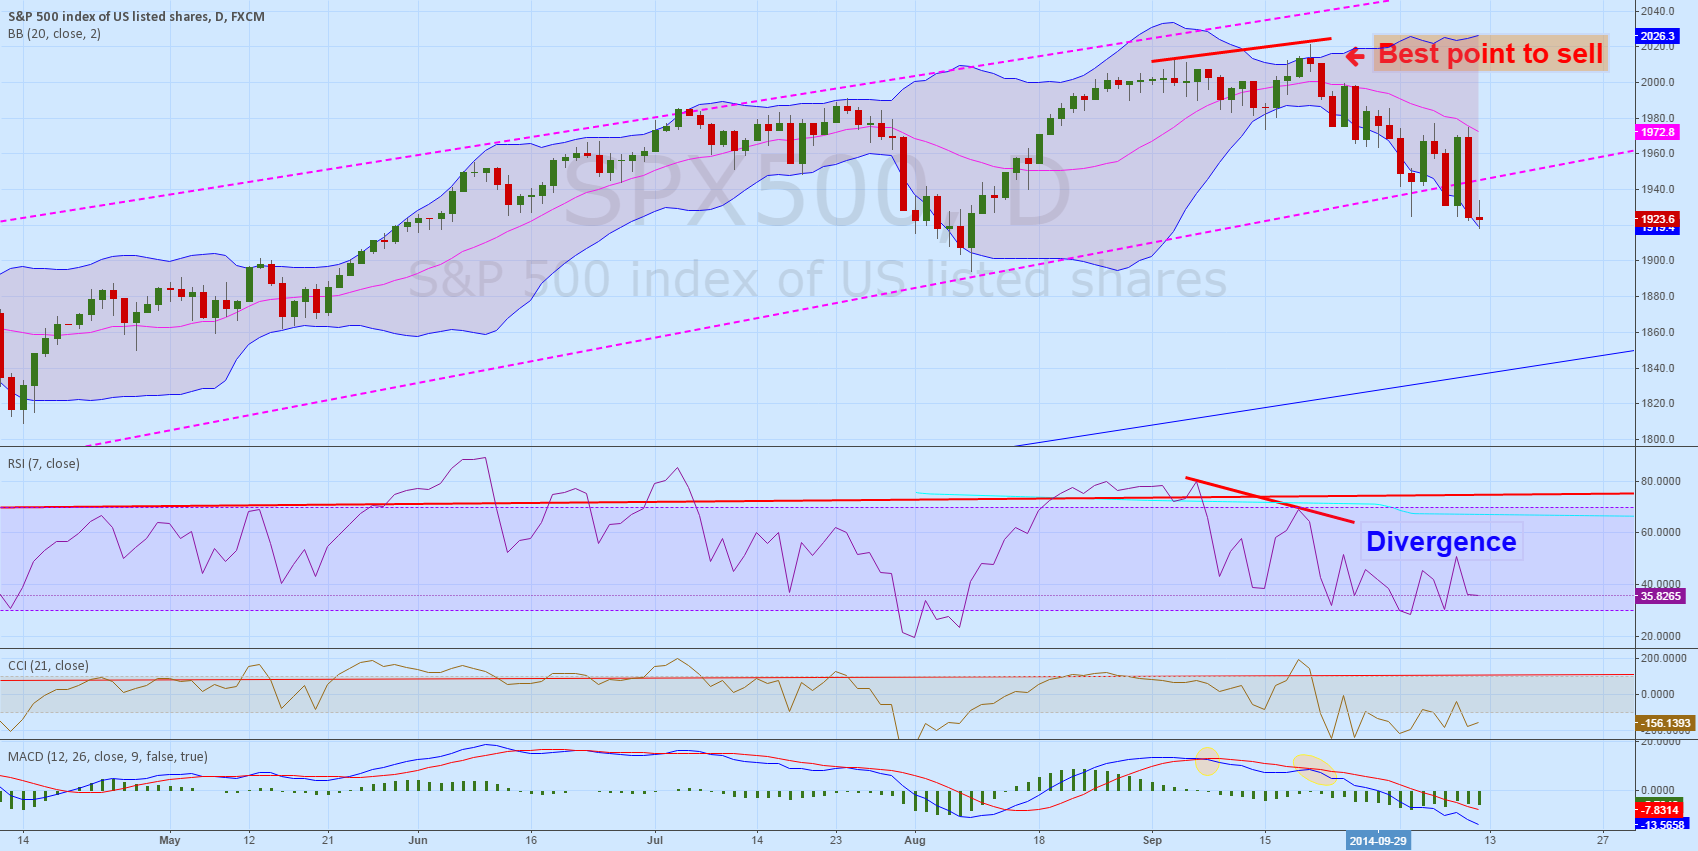 Republishing SP500, NAS - NEGATIVE DIVERGENCE ON RSi